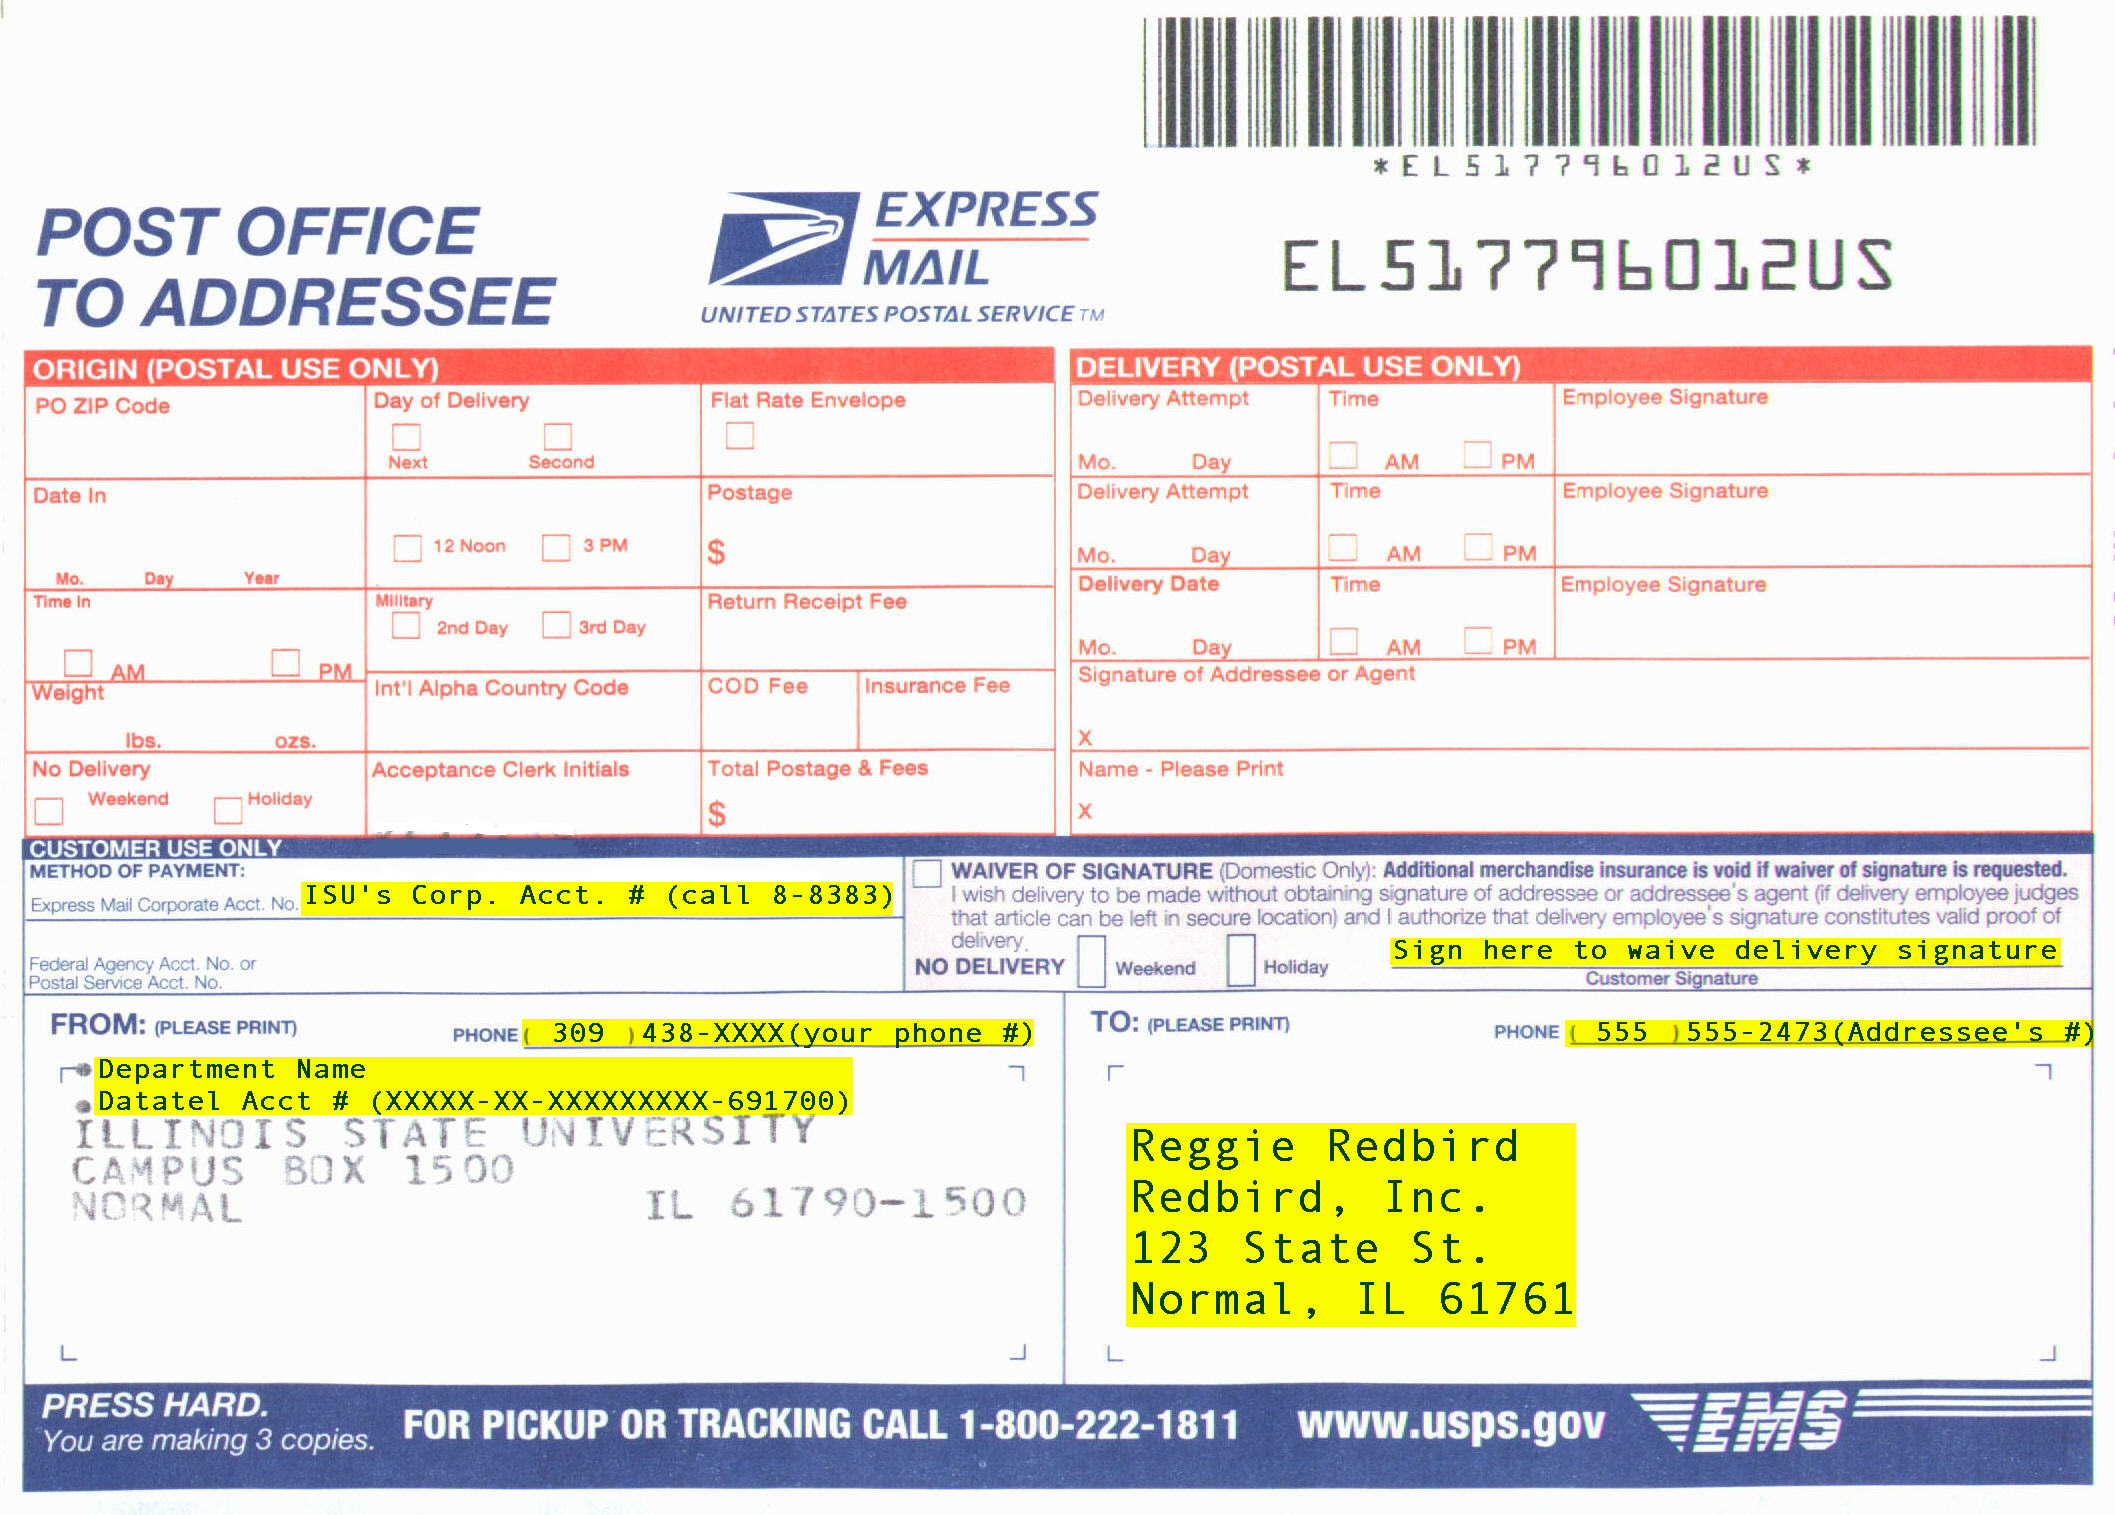 Usps Express Mail Instructions